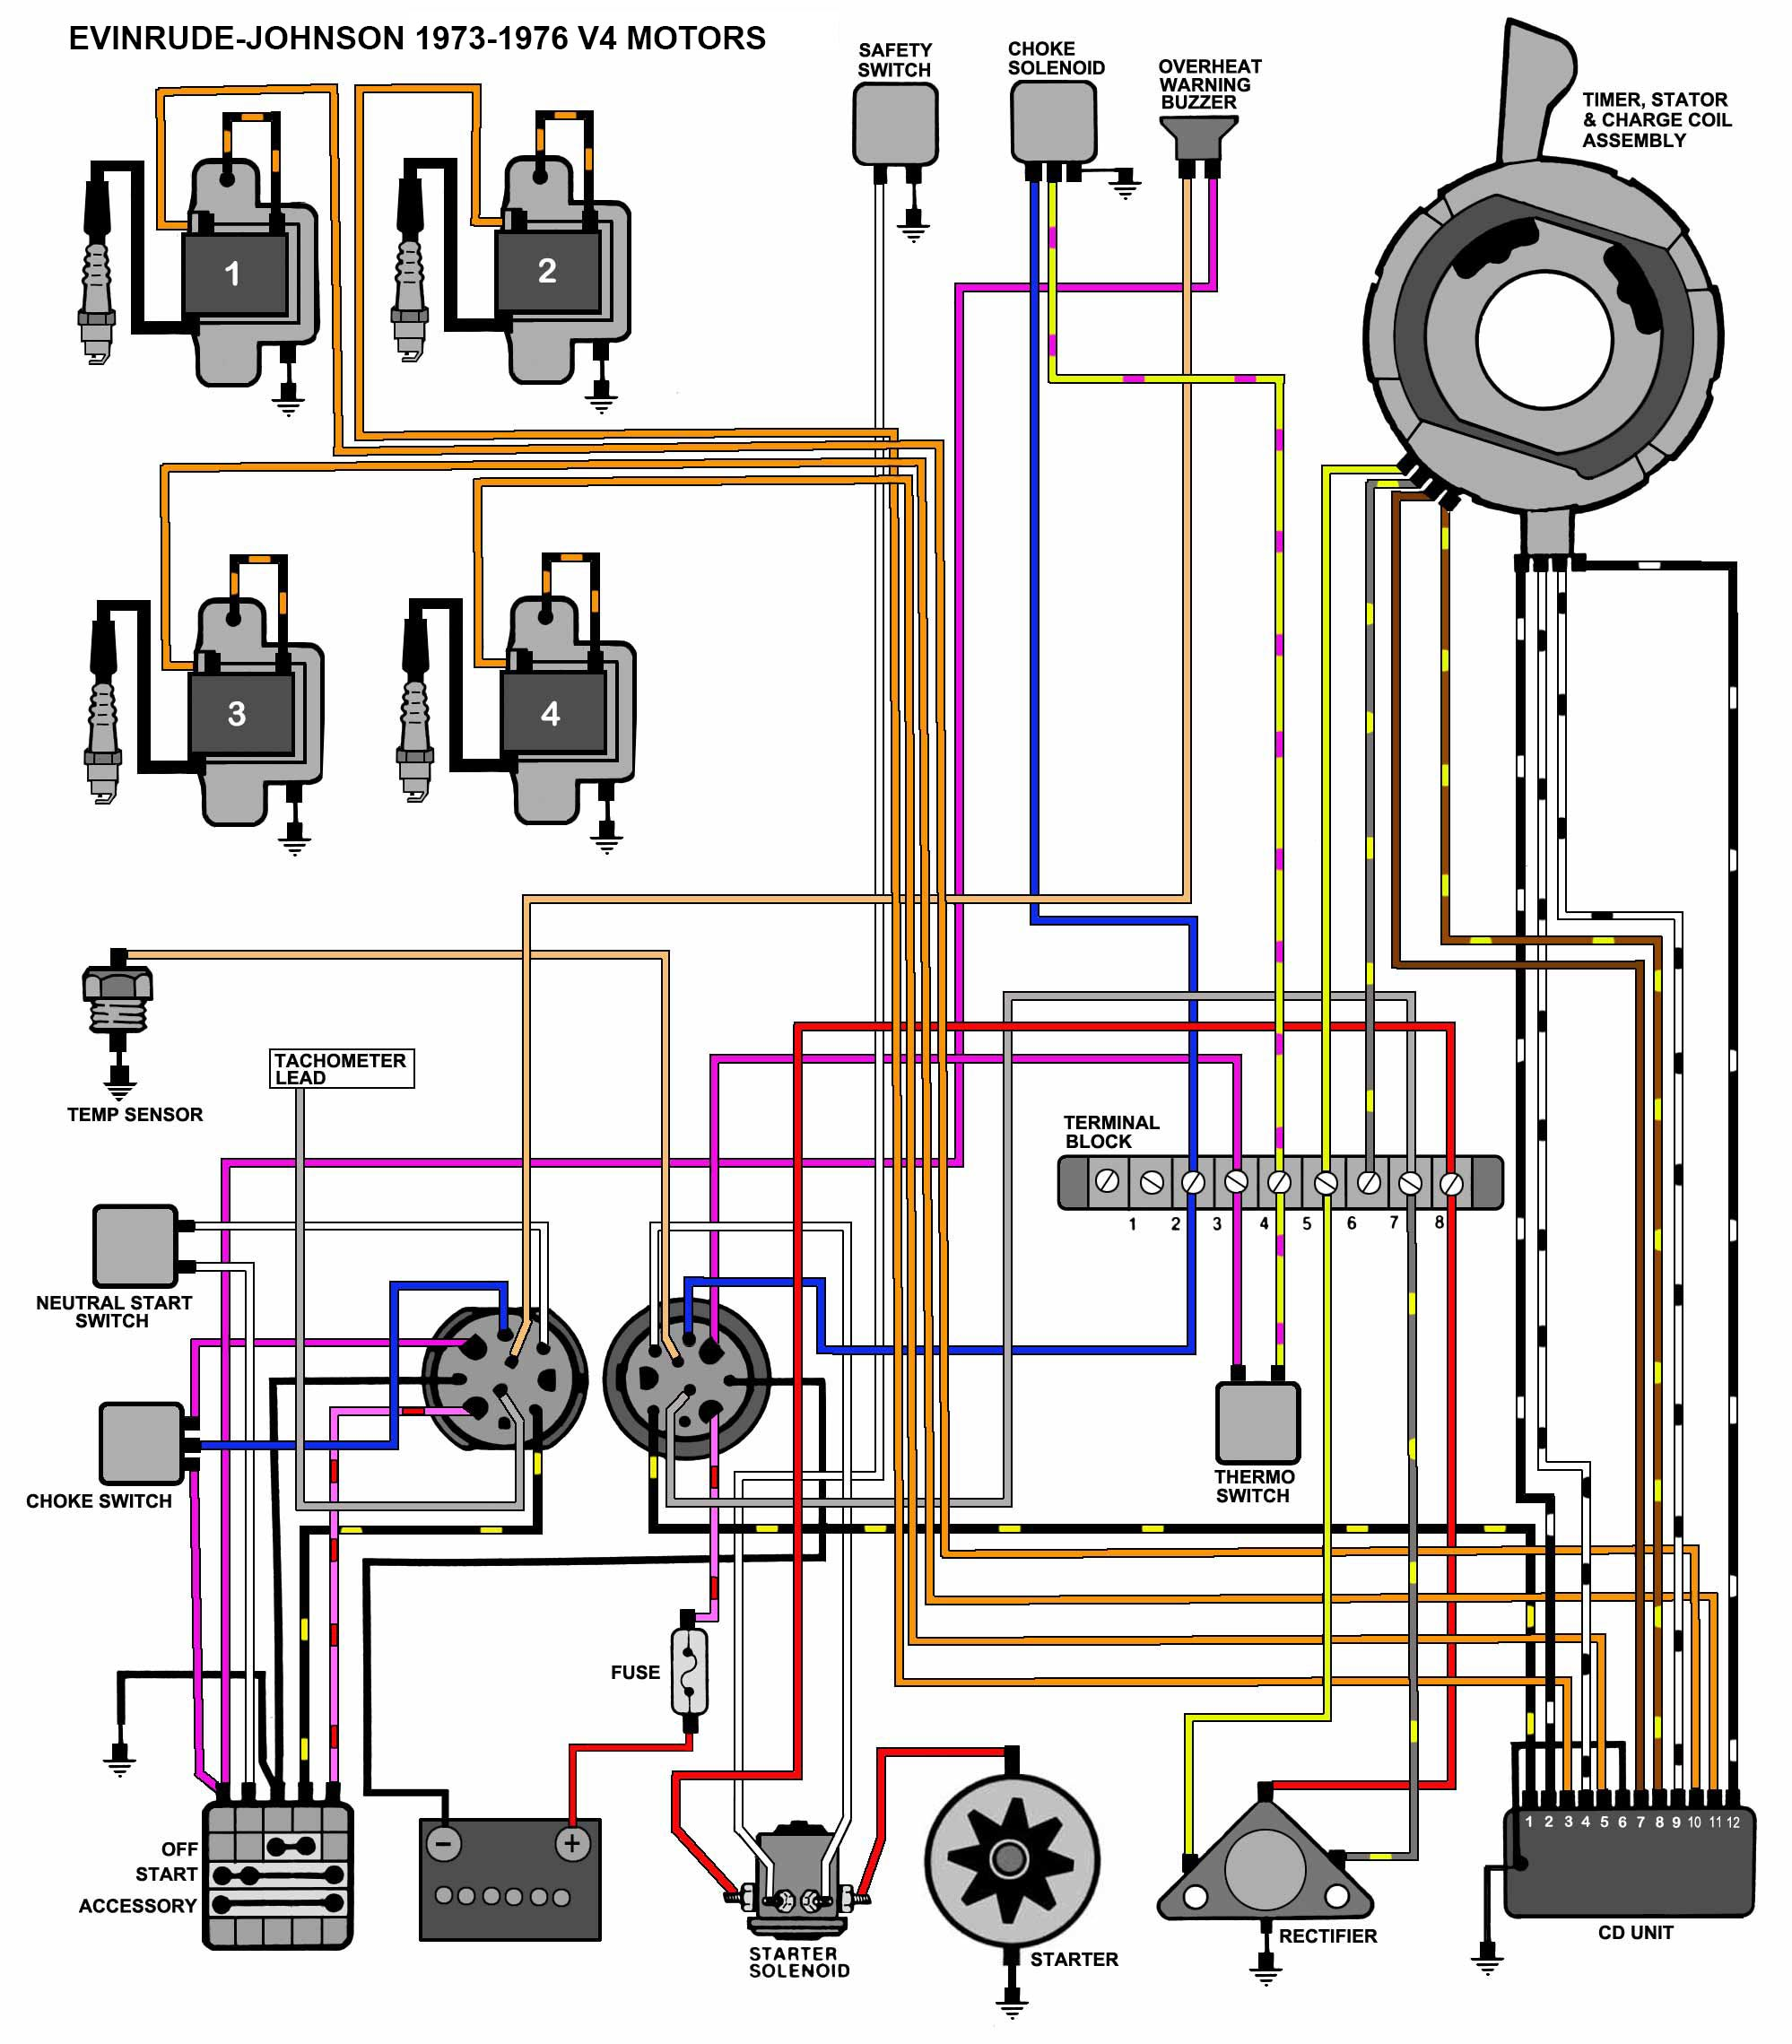 omc wire diagram omc co ignition diagram schematic all about repair Yamaha 200 Outboard Wiring Diagram omc ignition switch wiring diagram omc image omc johnson ignition switch wiring all about repair and